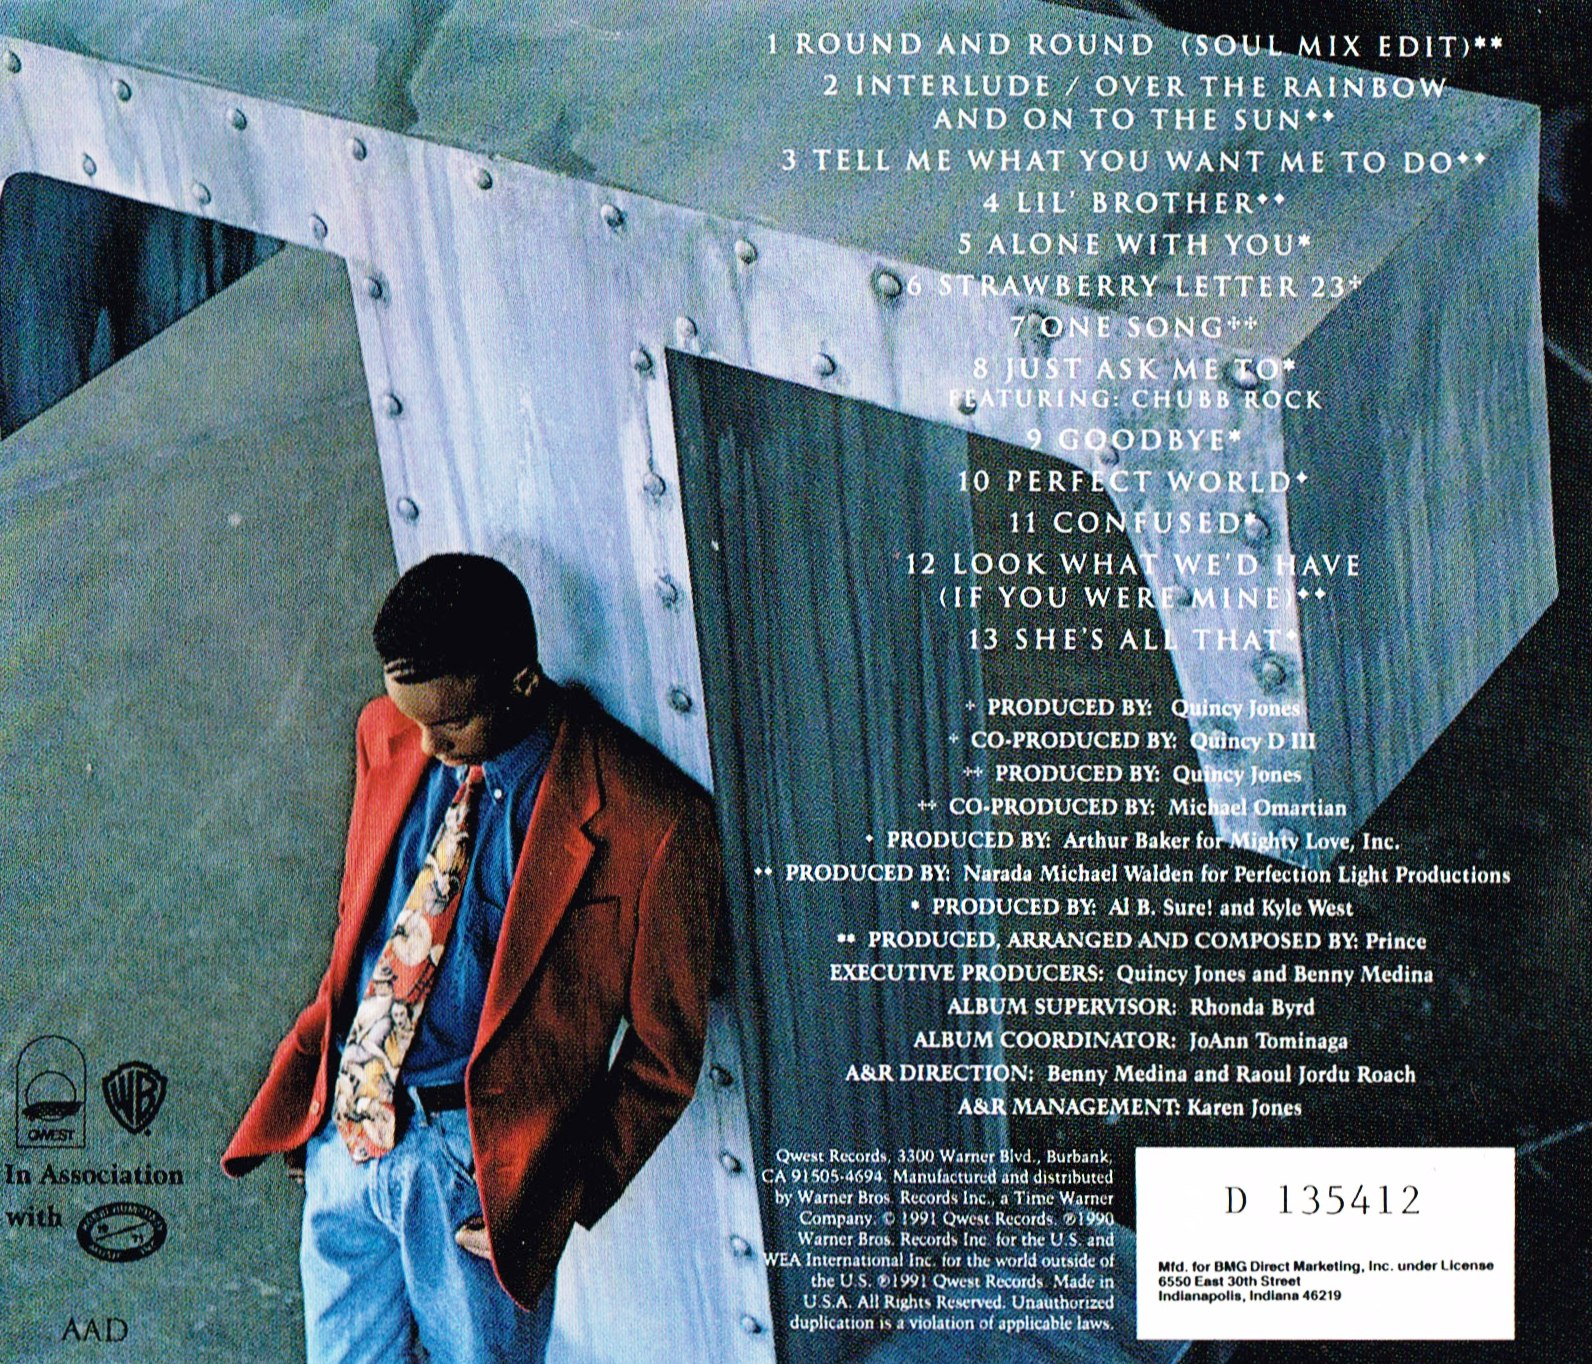 strawberry letter 23 tevin campbell i wanna be a new tevin campbell t e v i n 1991 14260